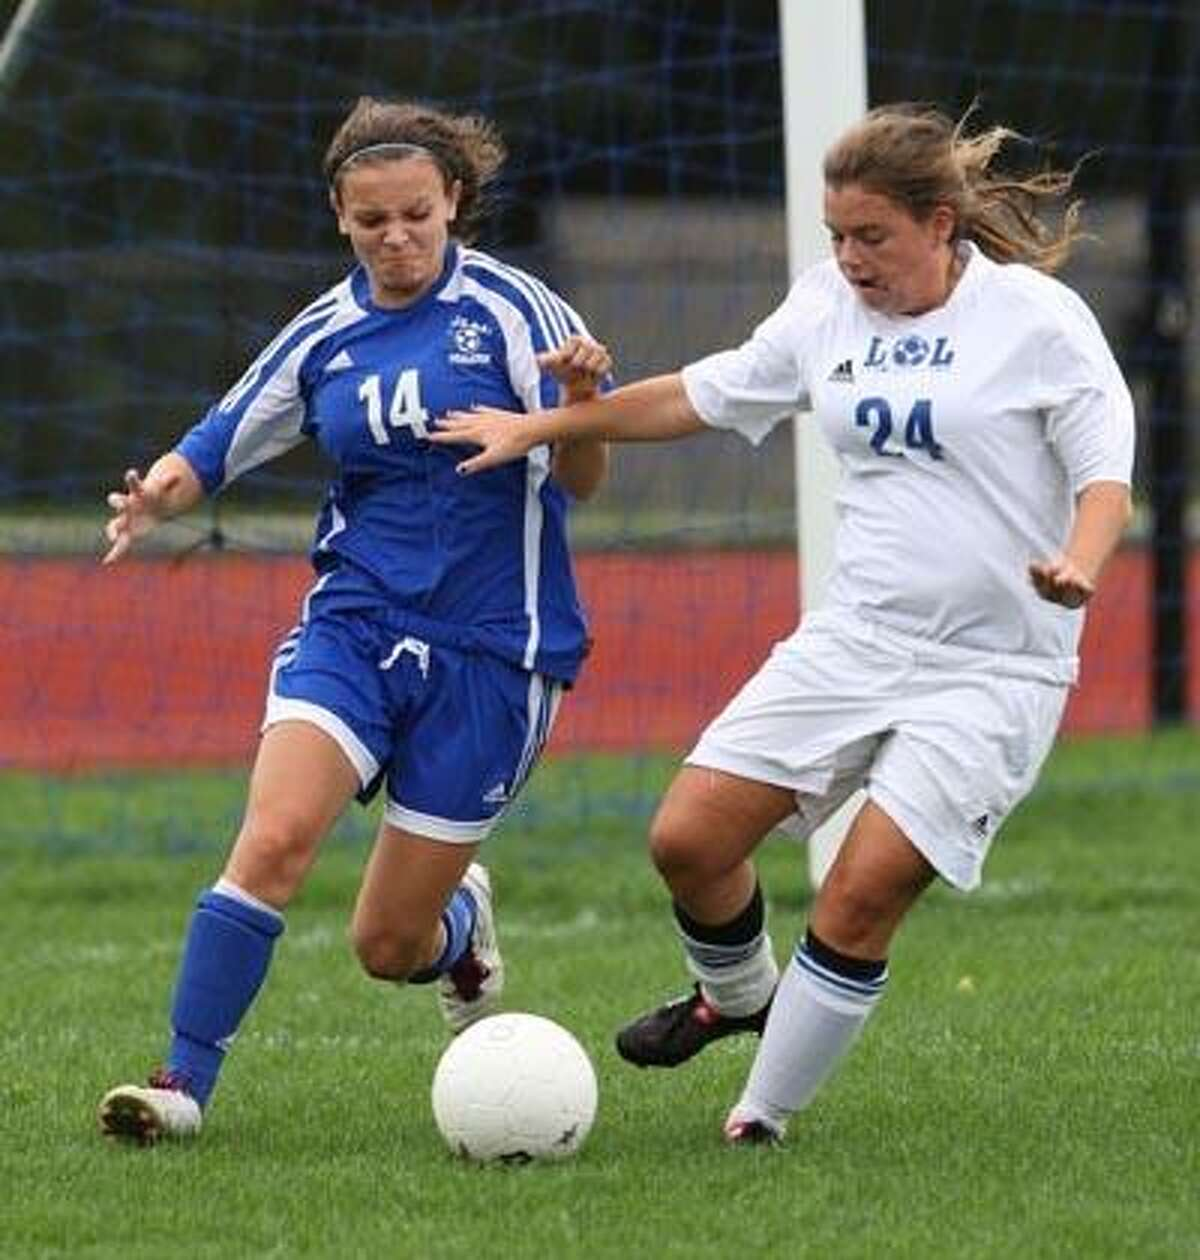 Hale Ray defender Beth Schoell takes on Old Lyme's Liv Wilkie Wednesday. (Todd Kalif